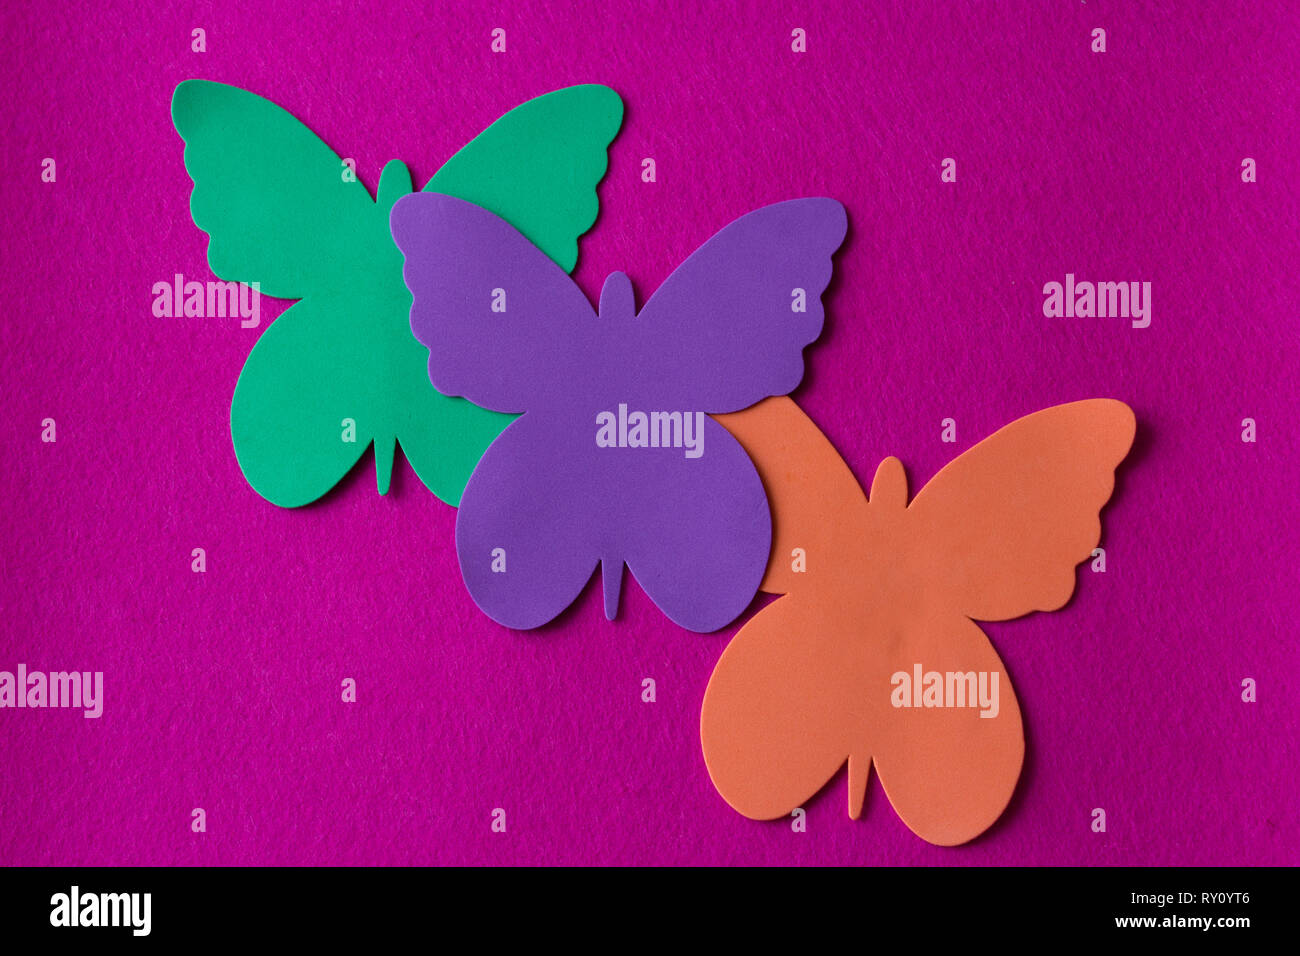 three bright and coloured butterflies made of soft material on a fuchsia rag background - Stock Image